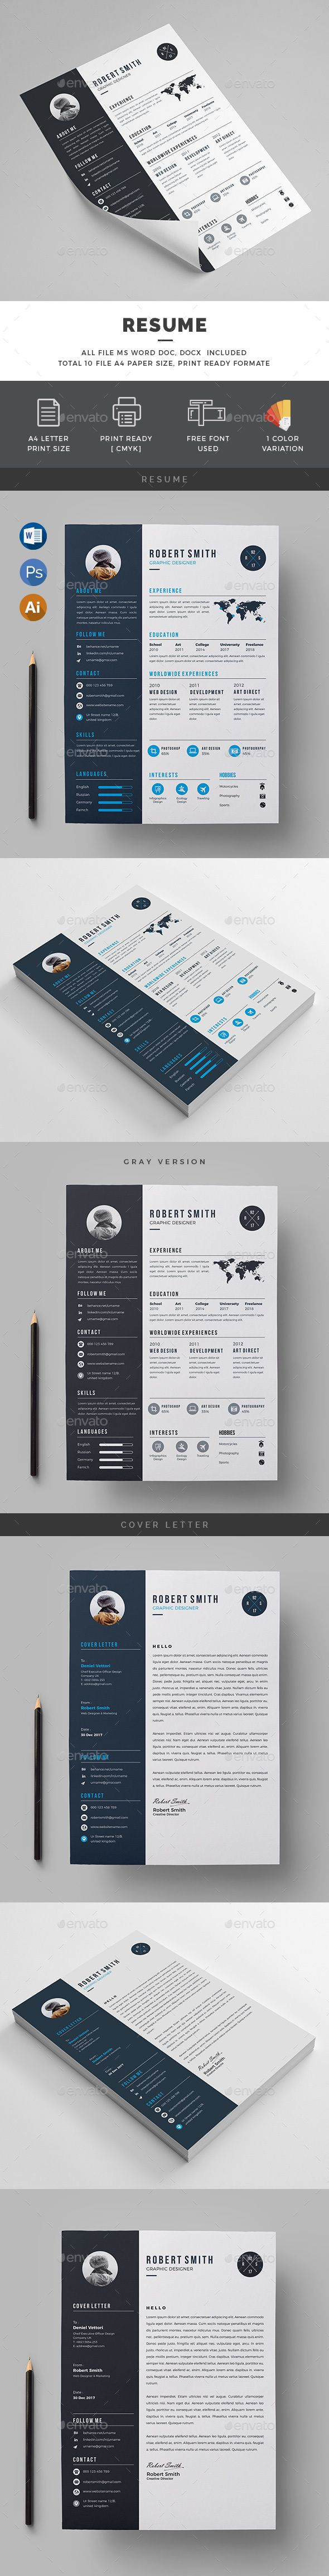 Resume | Template, Simple resume template and Simple resume